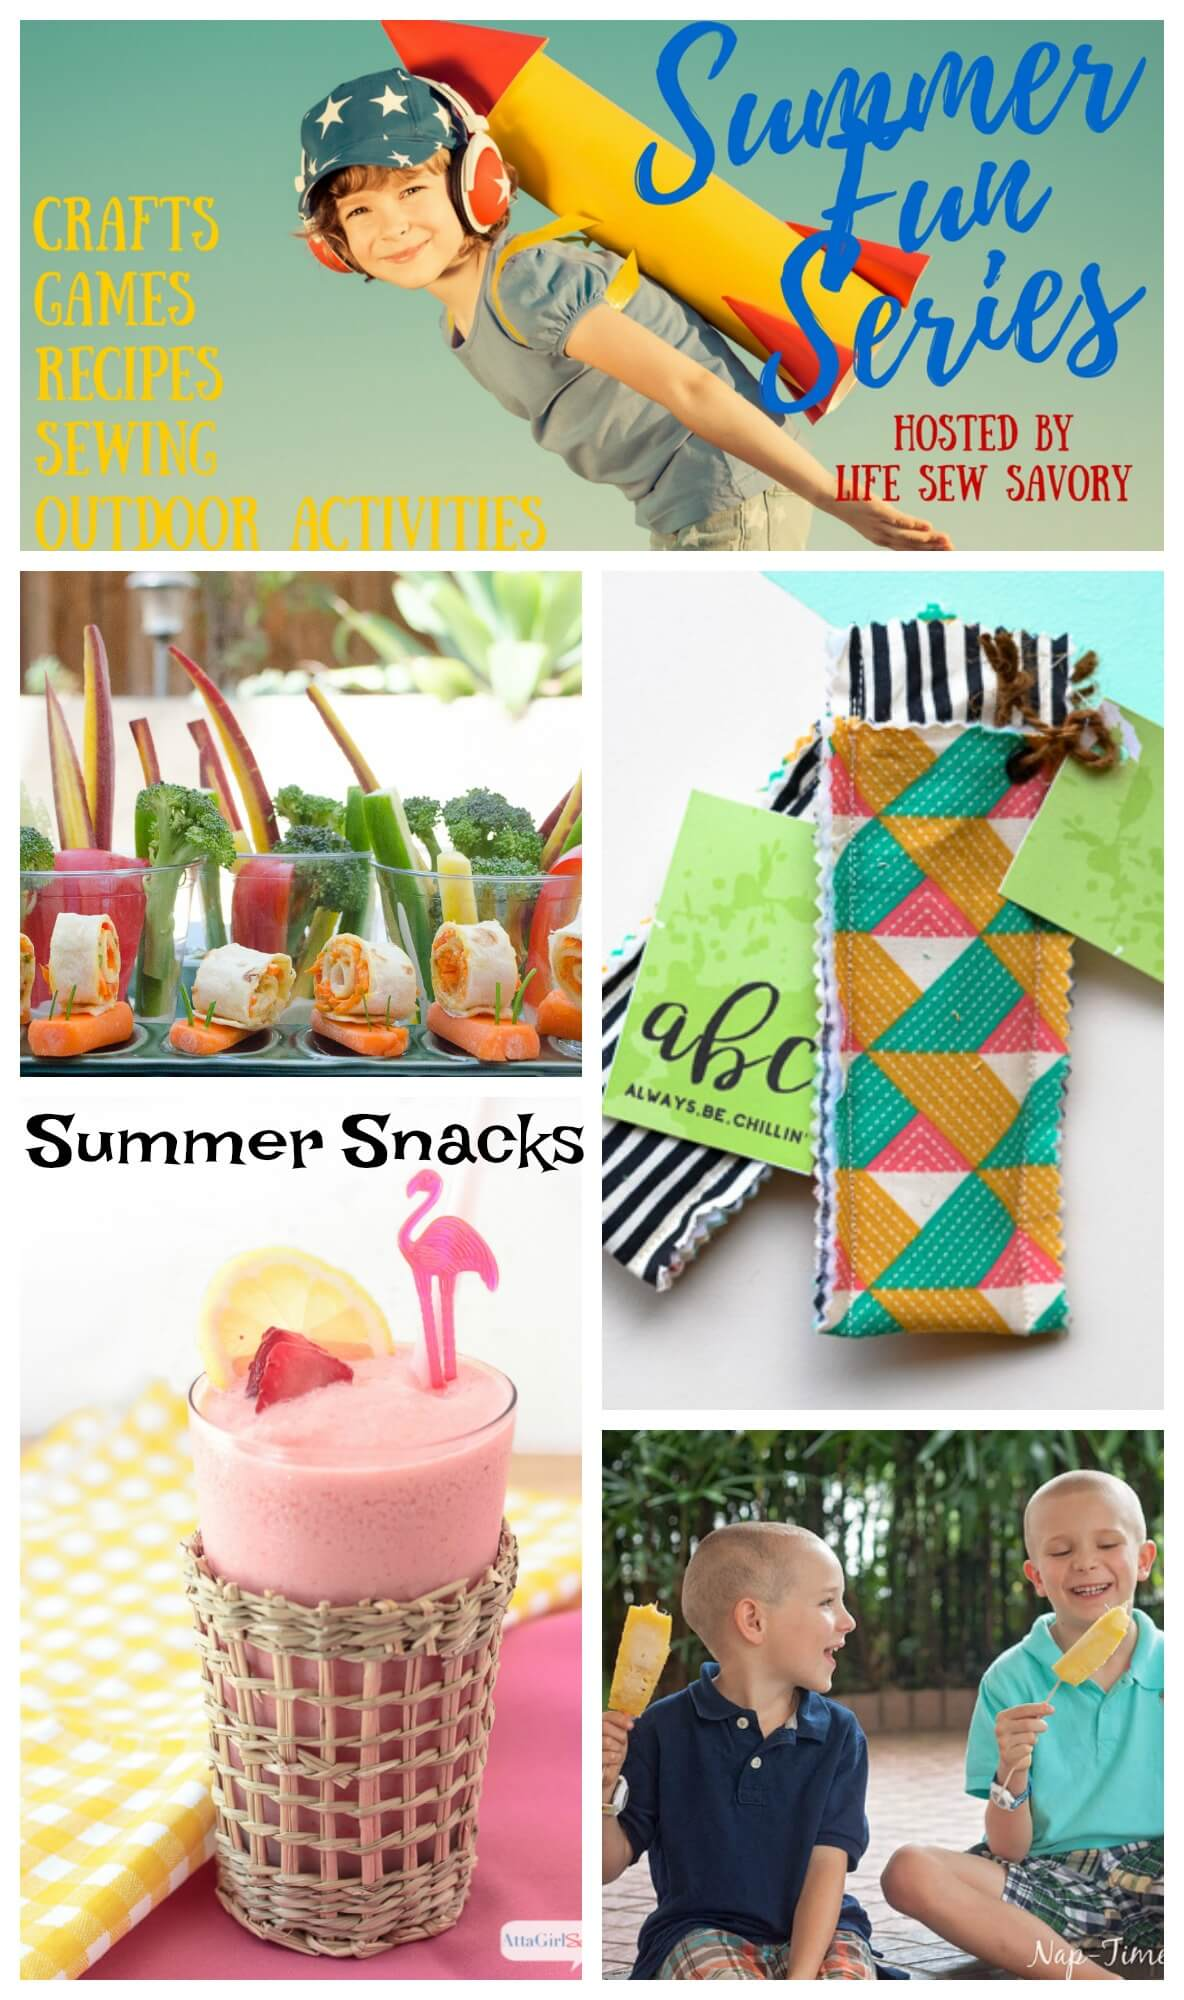 sensational Summer Snacks in the Summer Fun Series from Life Sew Savory